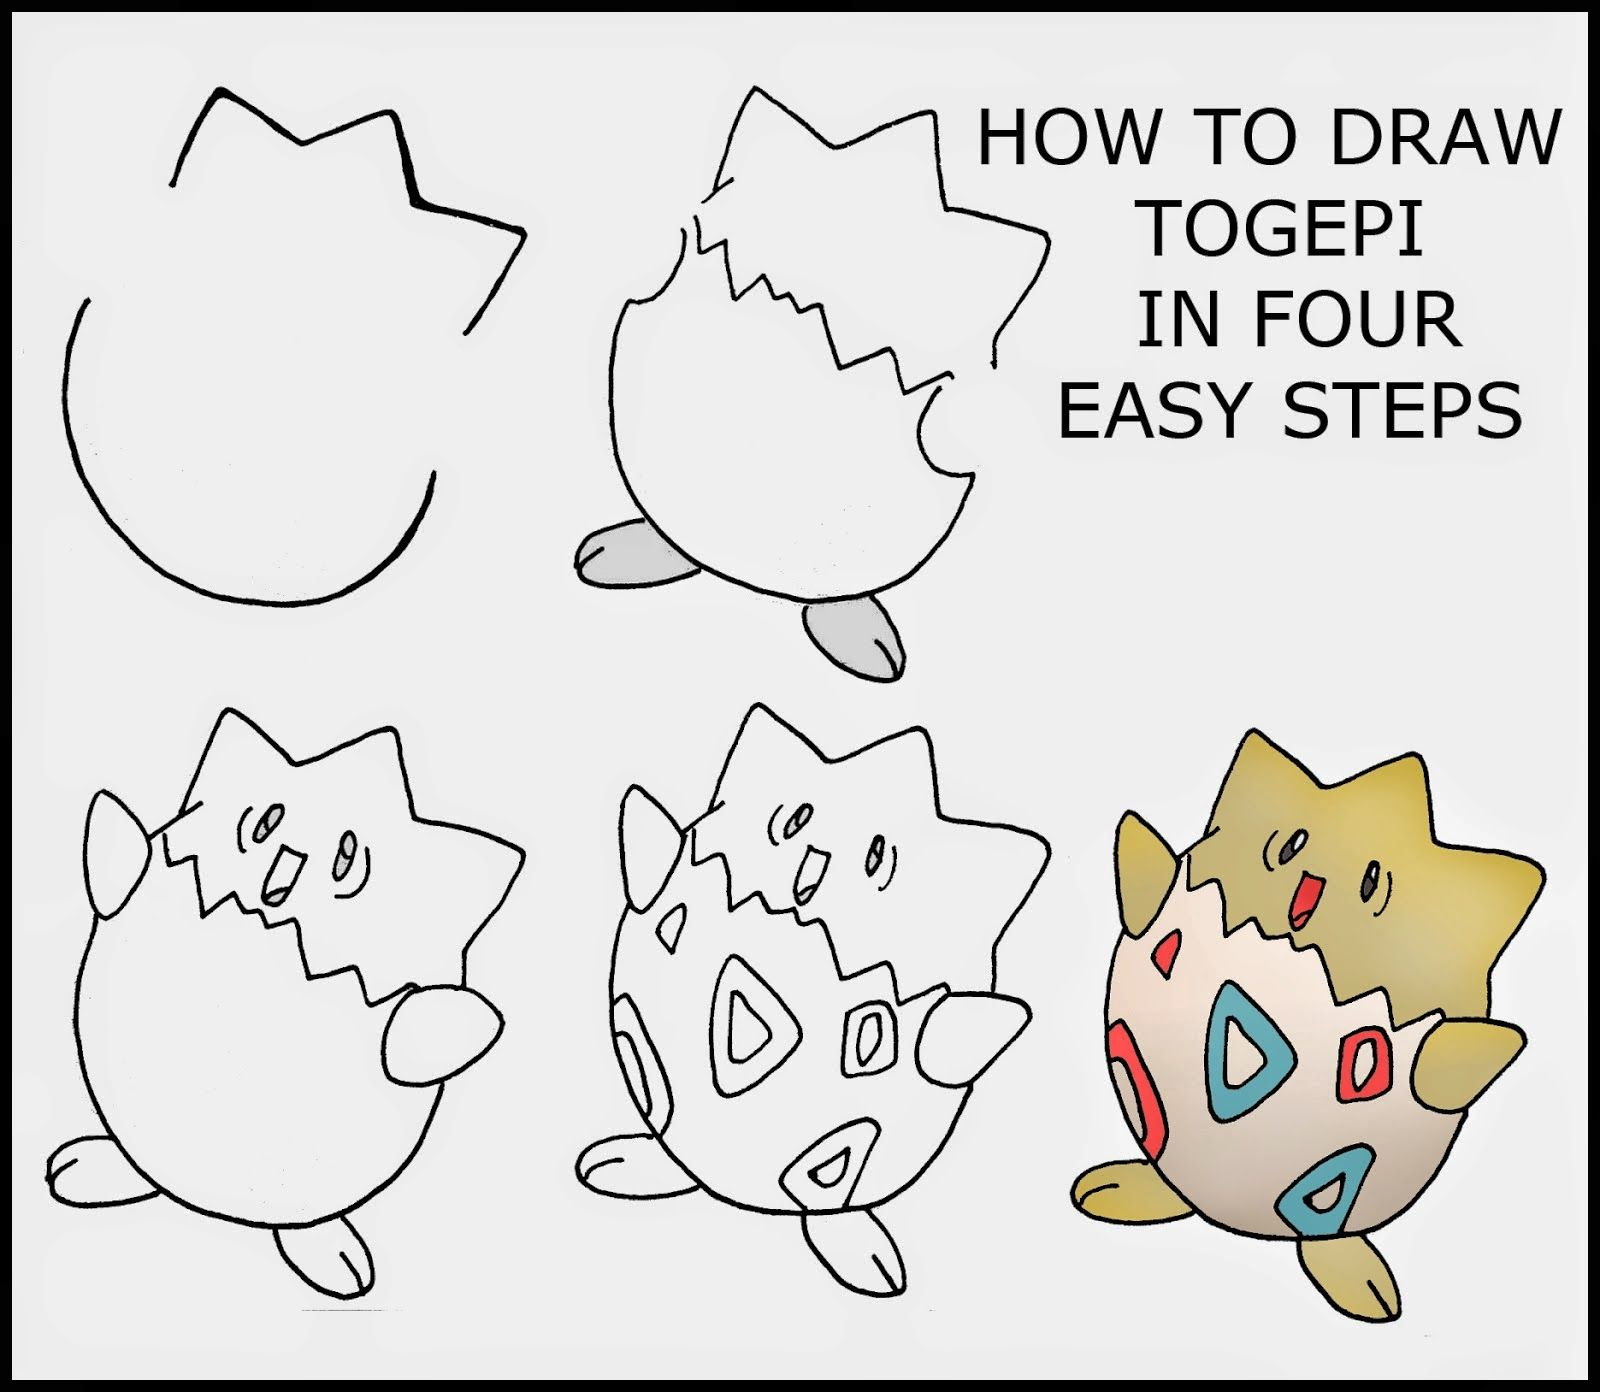 How to draw togepi in four stages